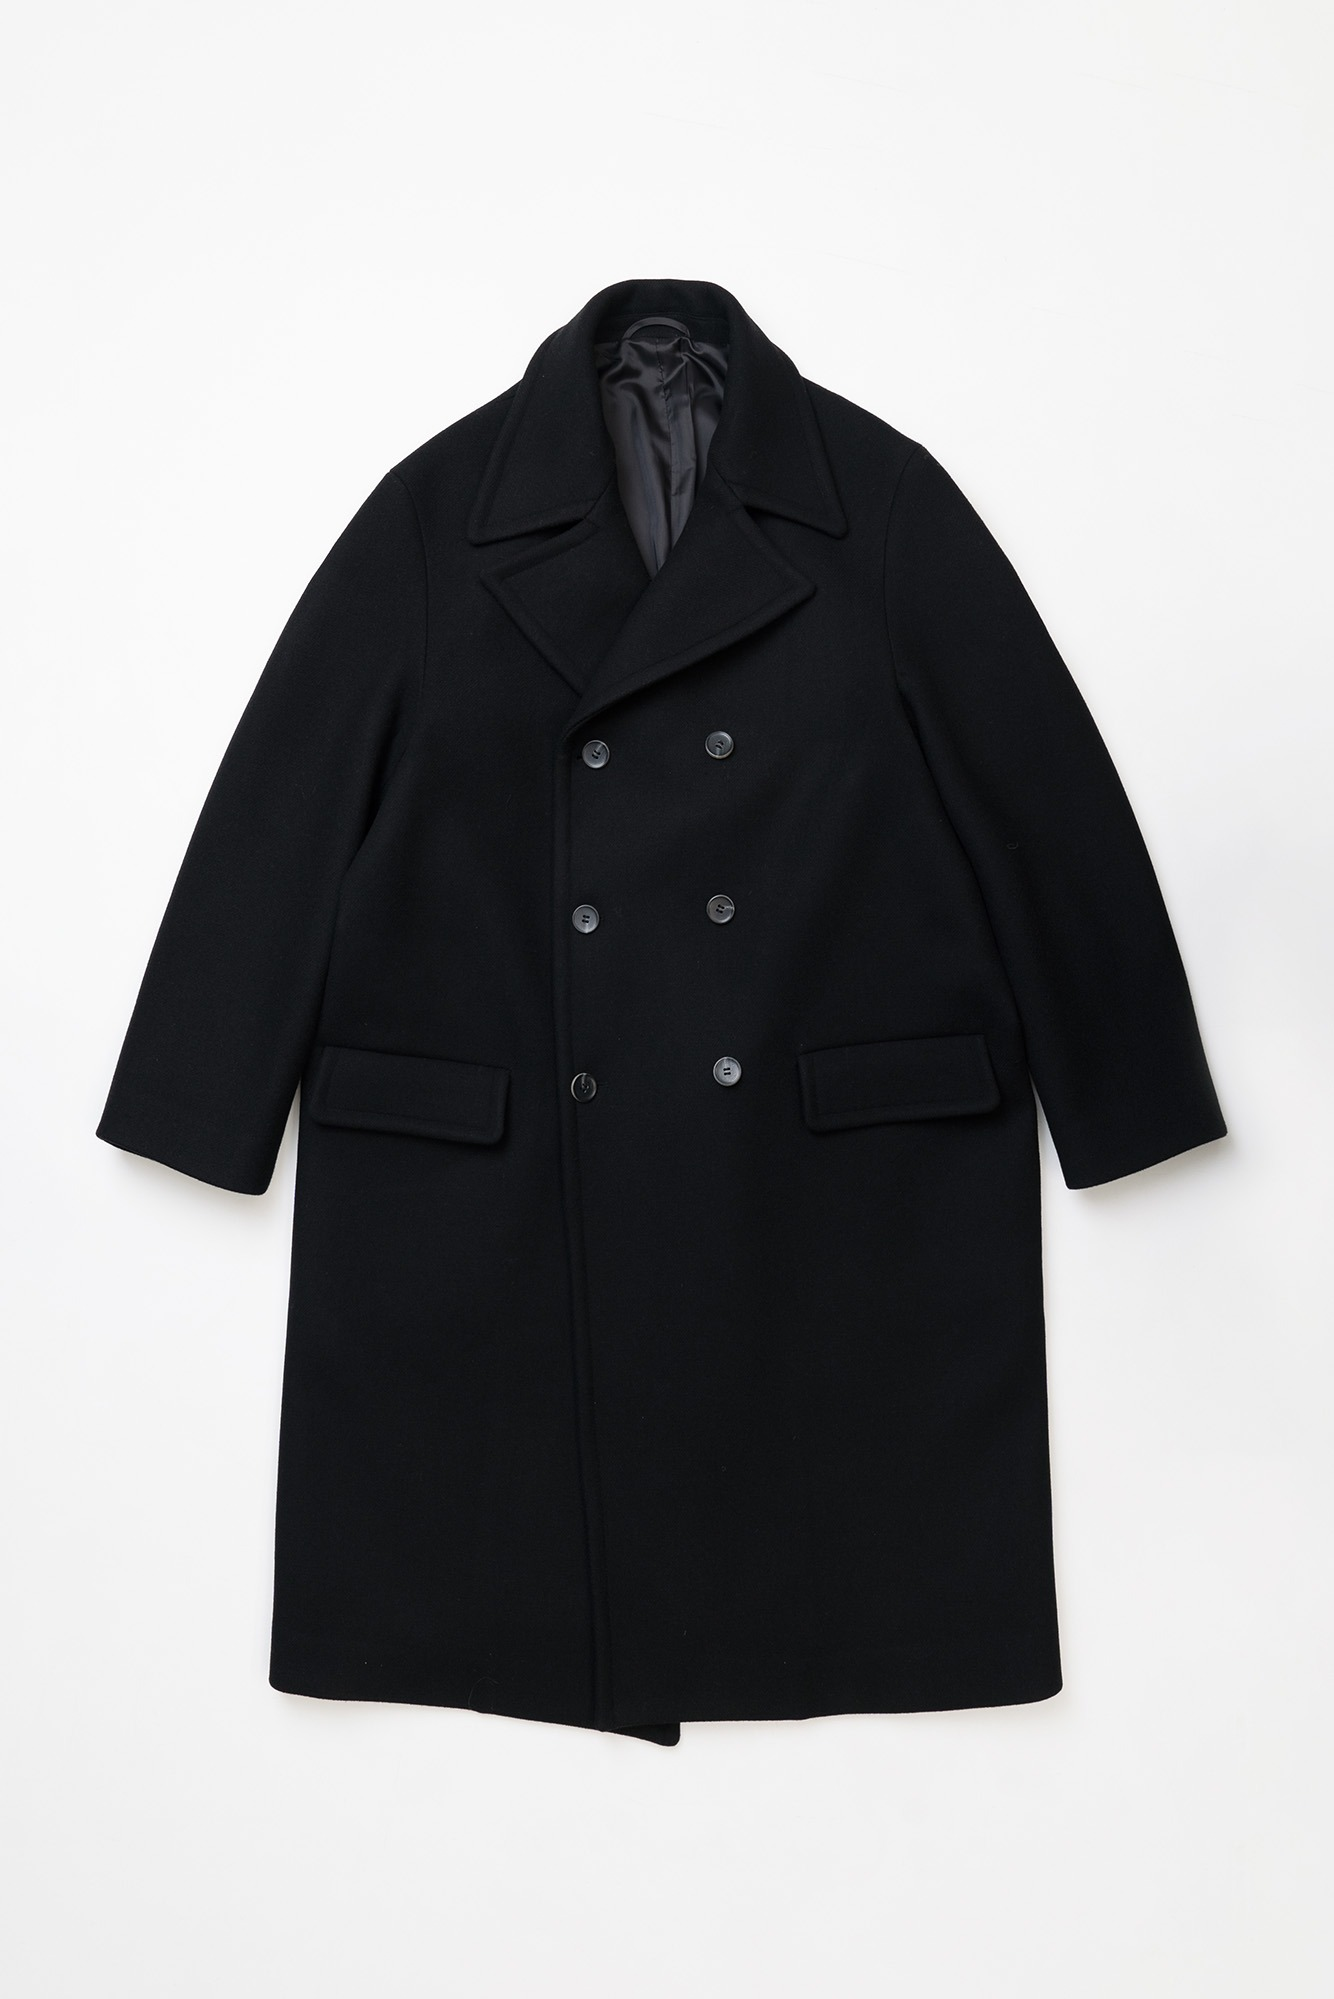 "OOPARTS Oversize Silhouette Quards Coat ""Black"""